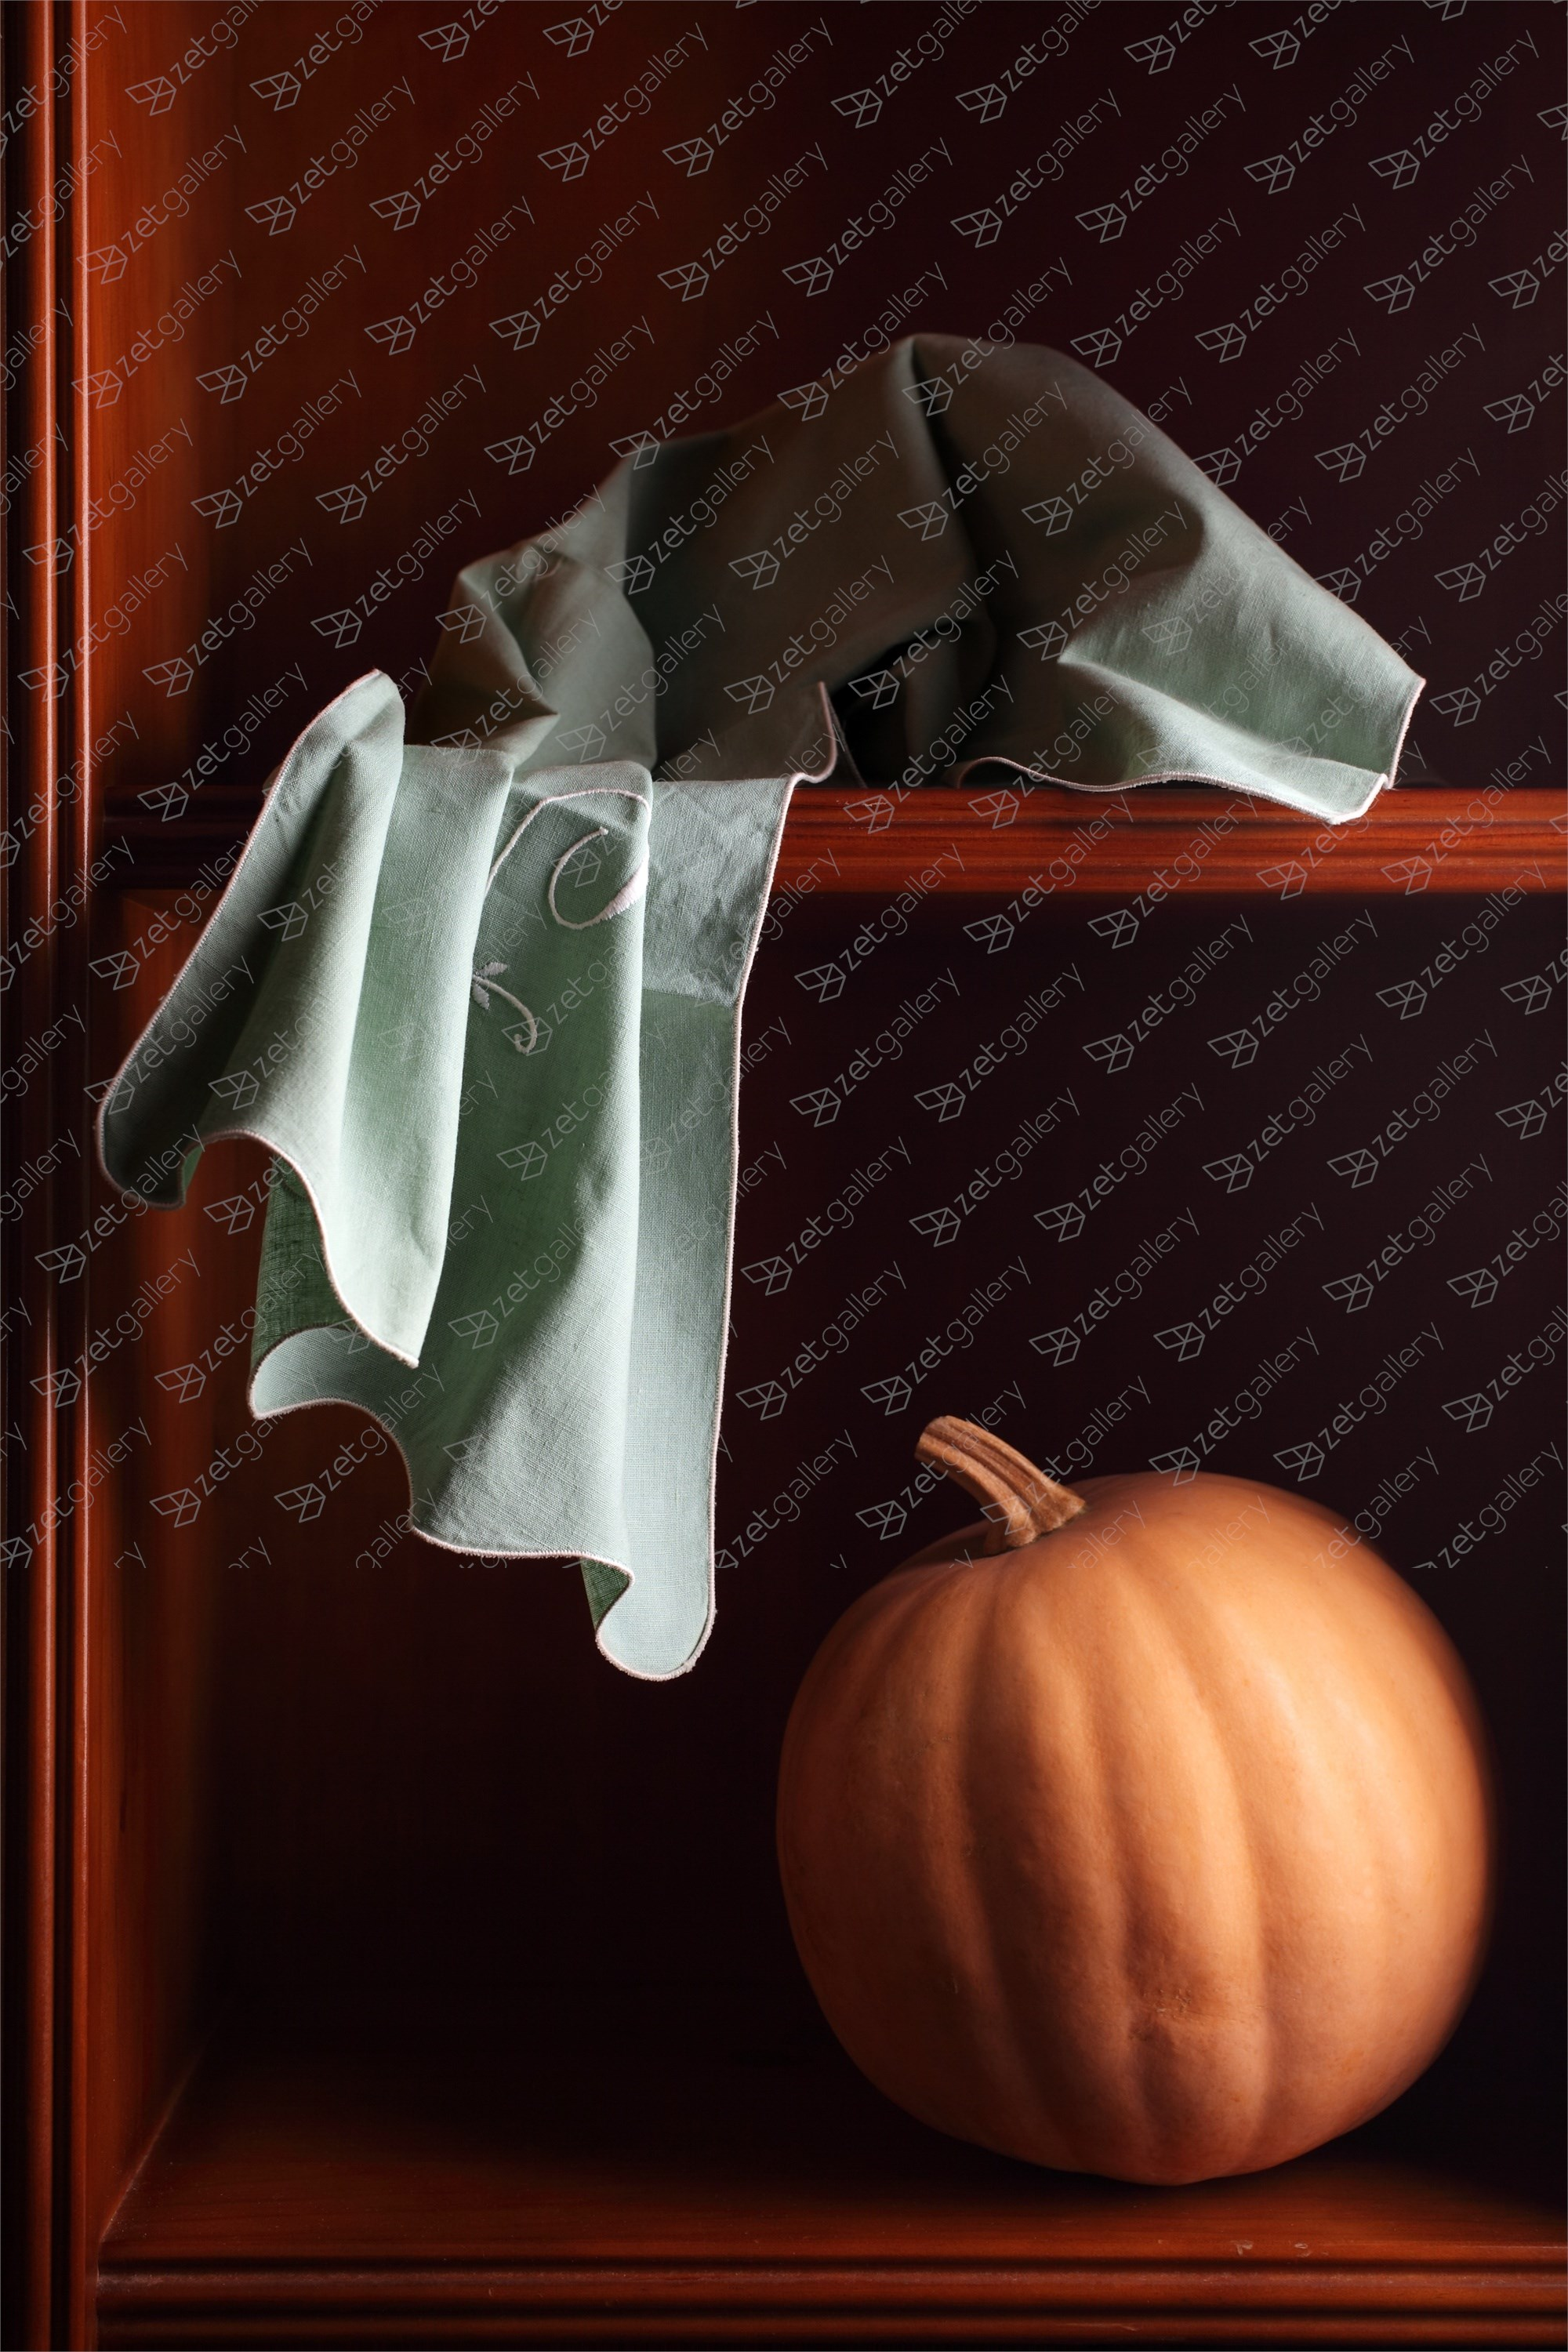 Calabaza y paño, original Still Life Digital Photography by Cecilia Gilabert